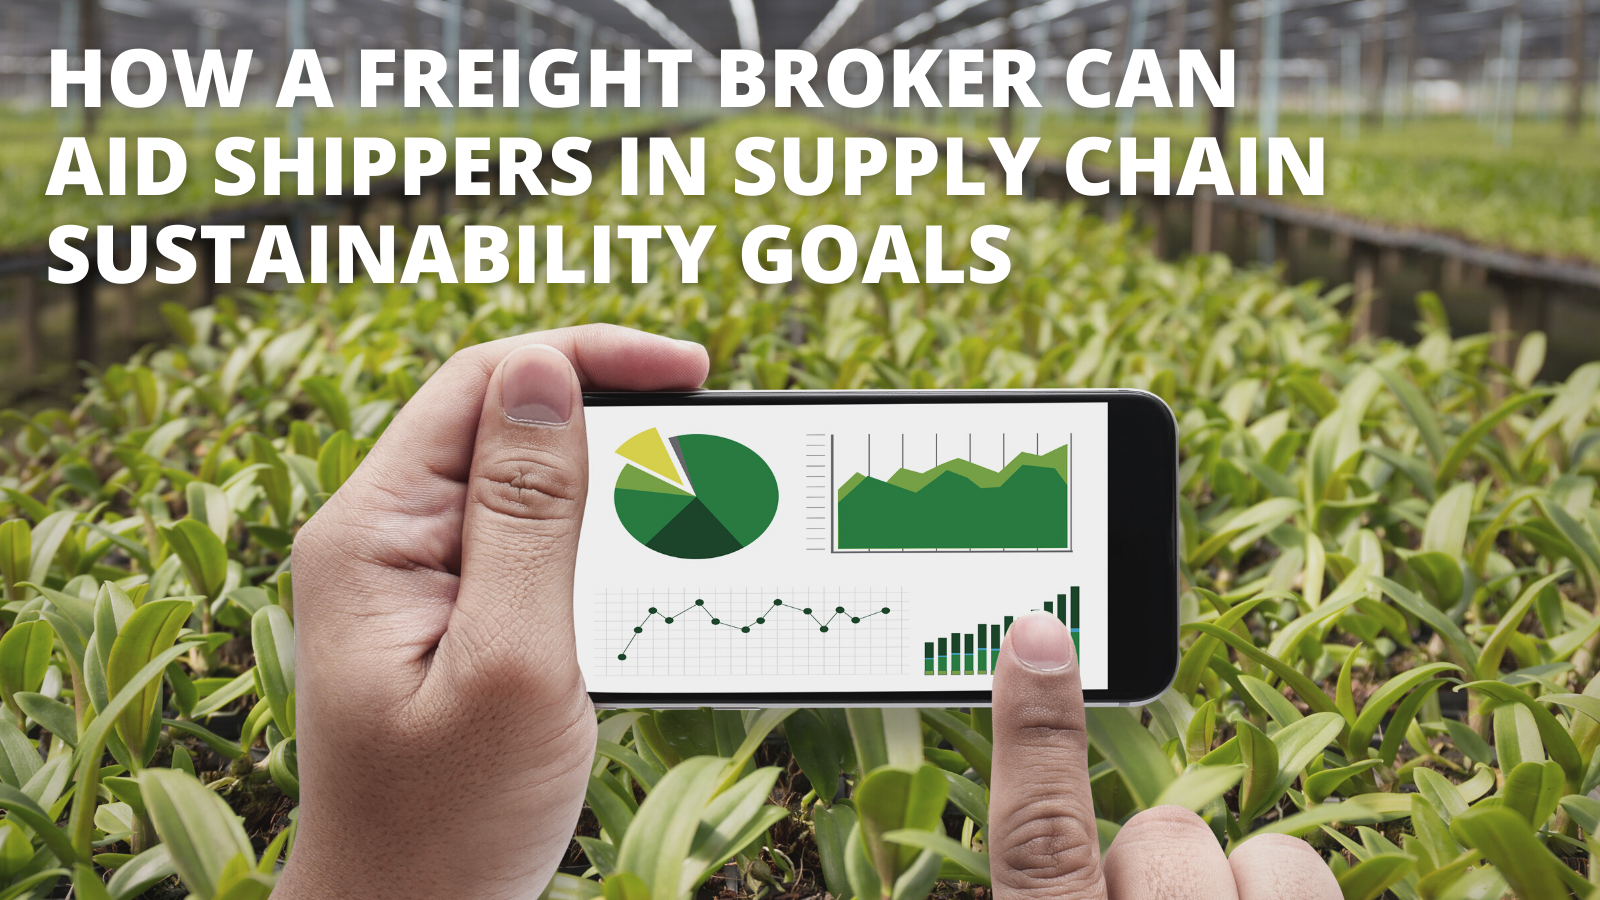 How a Freight Broker Can Aid Shippers in Supply Chain Sustainability Goals